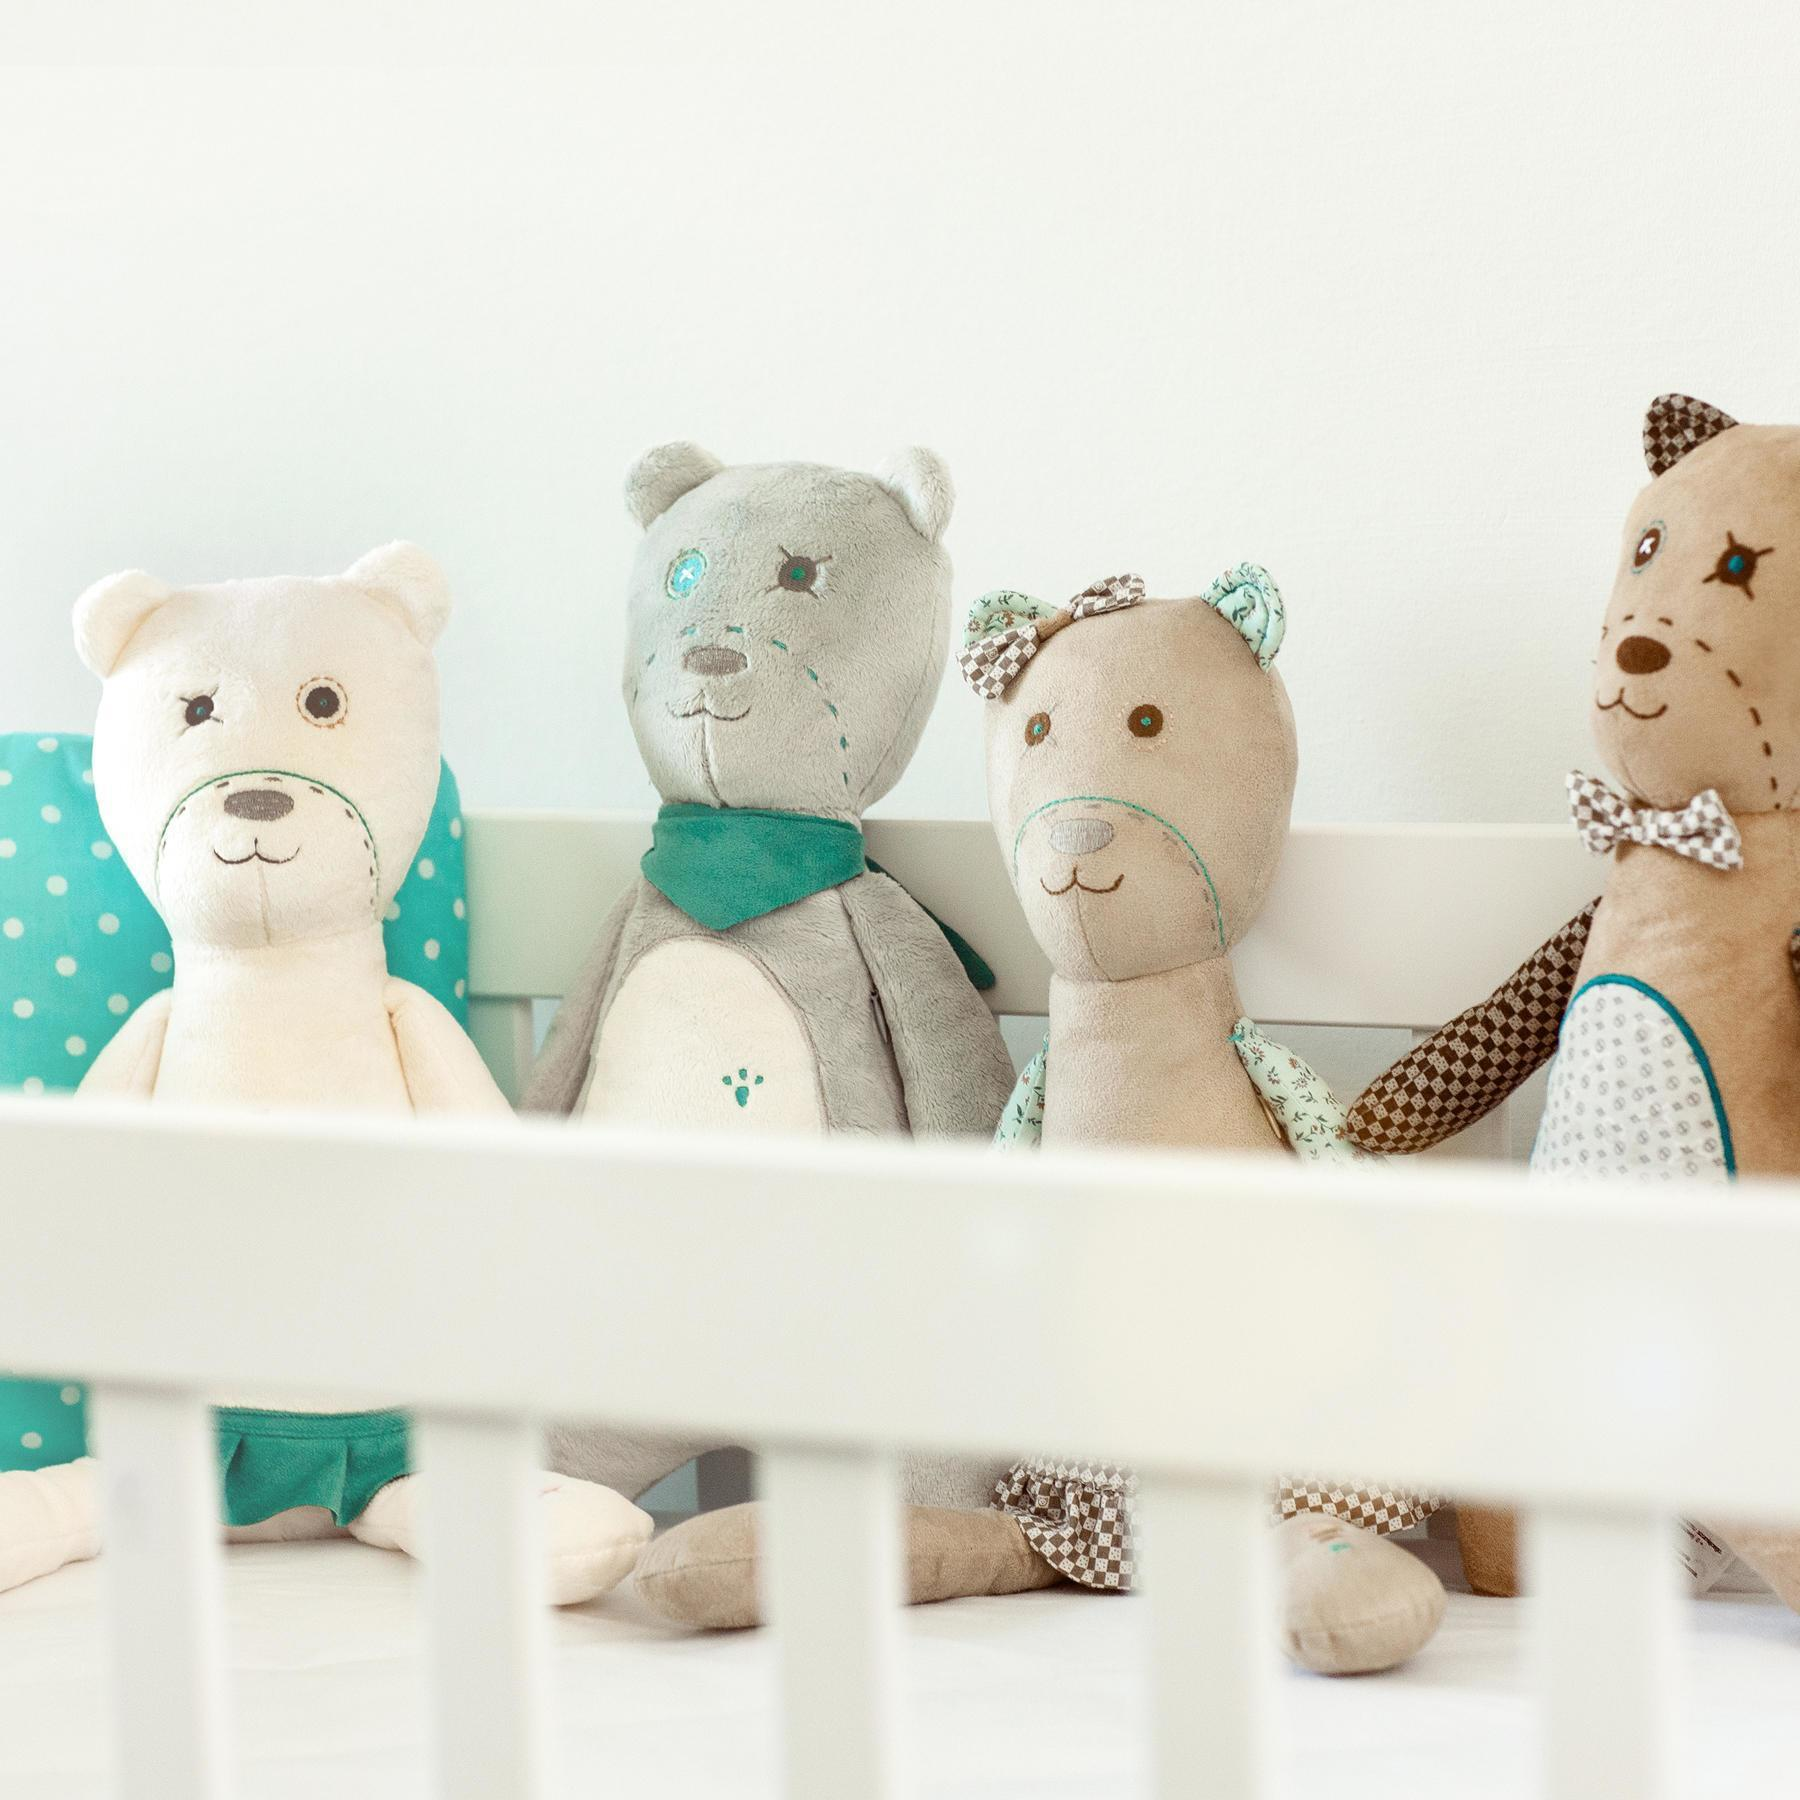 White Noise Teddy Bears - myHummy - Ash, Pearl, Filbert and Fleur